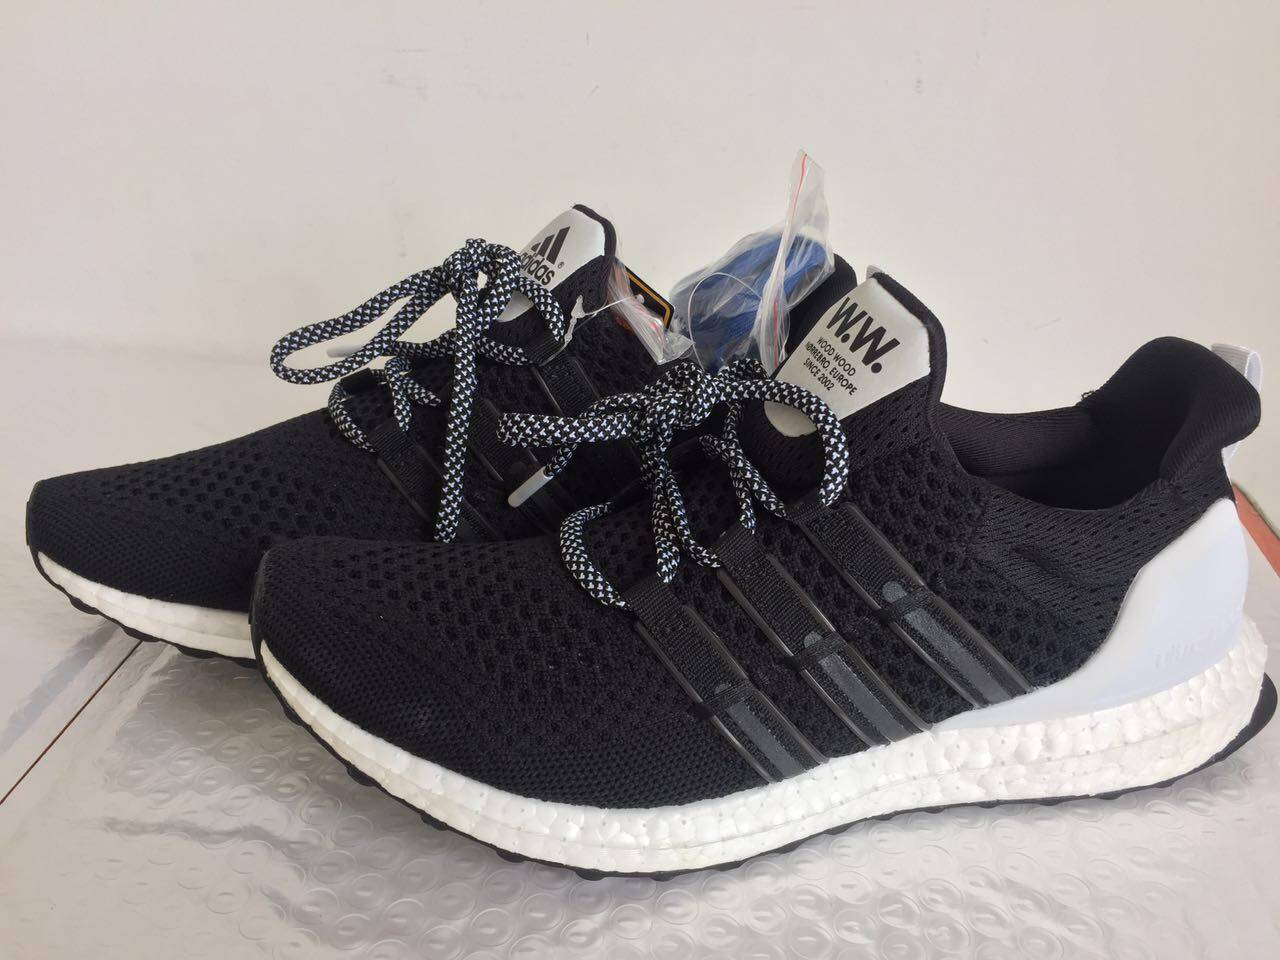 28d4810bbc3 1 ADIDAS ULTRA BOOST WOOD WOOD AF5778 PK EXCLUSIVE